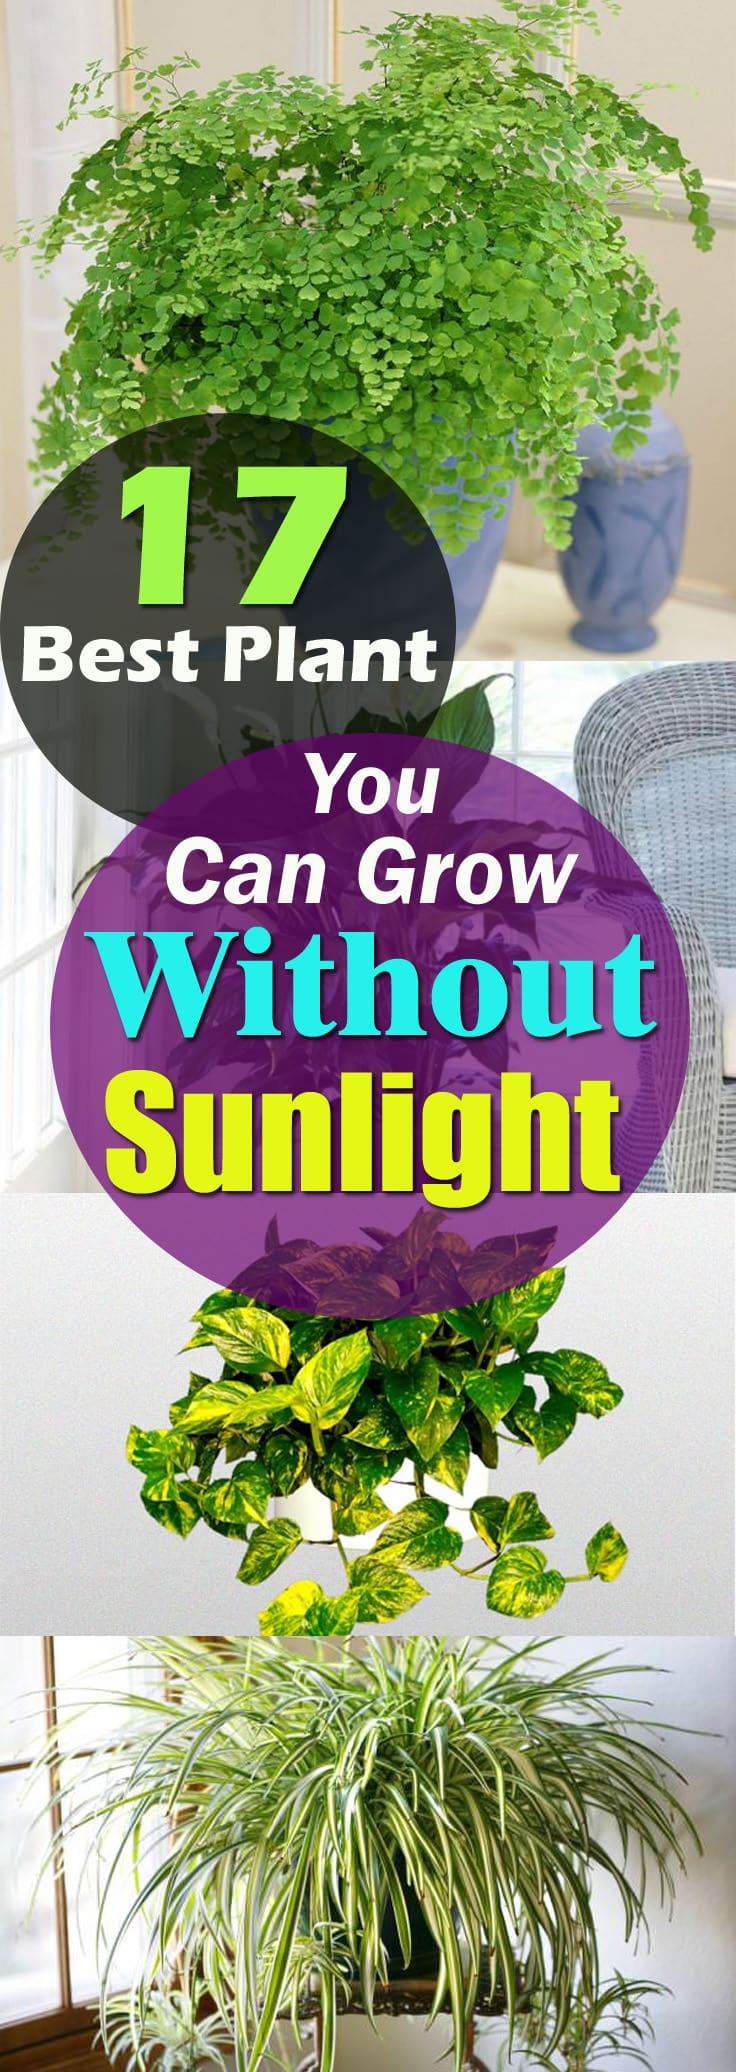 Indoor Plants For Low Light Plants That Grow Without Sunlight 17 Best Plants To Grow Indoors